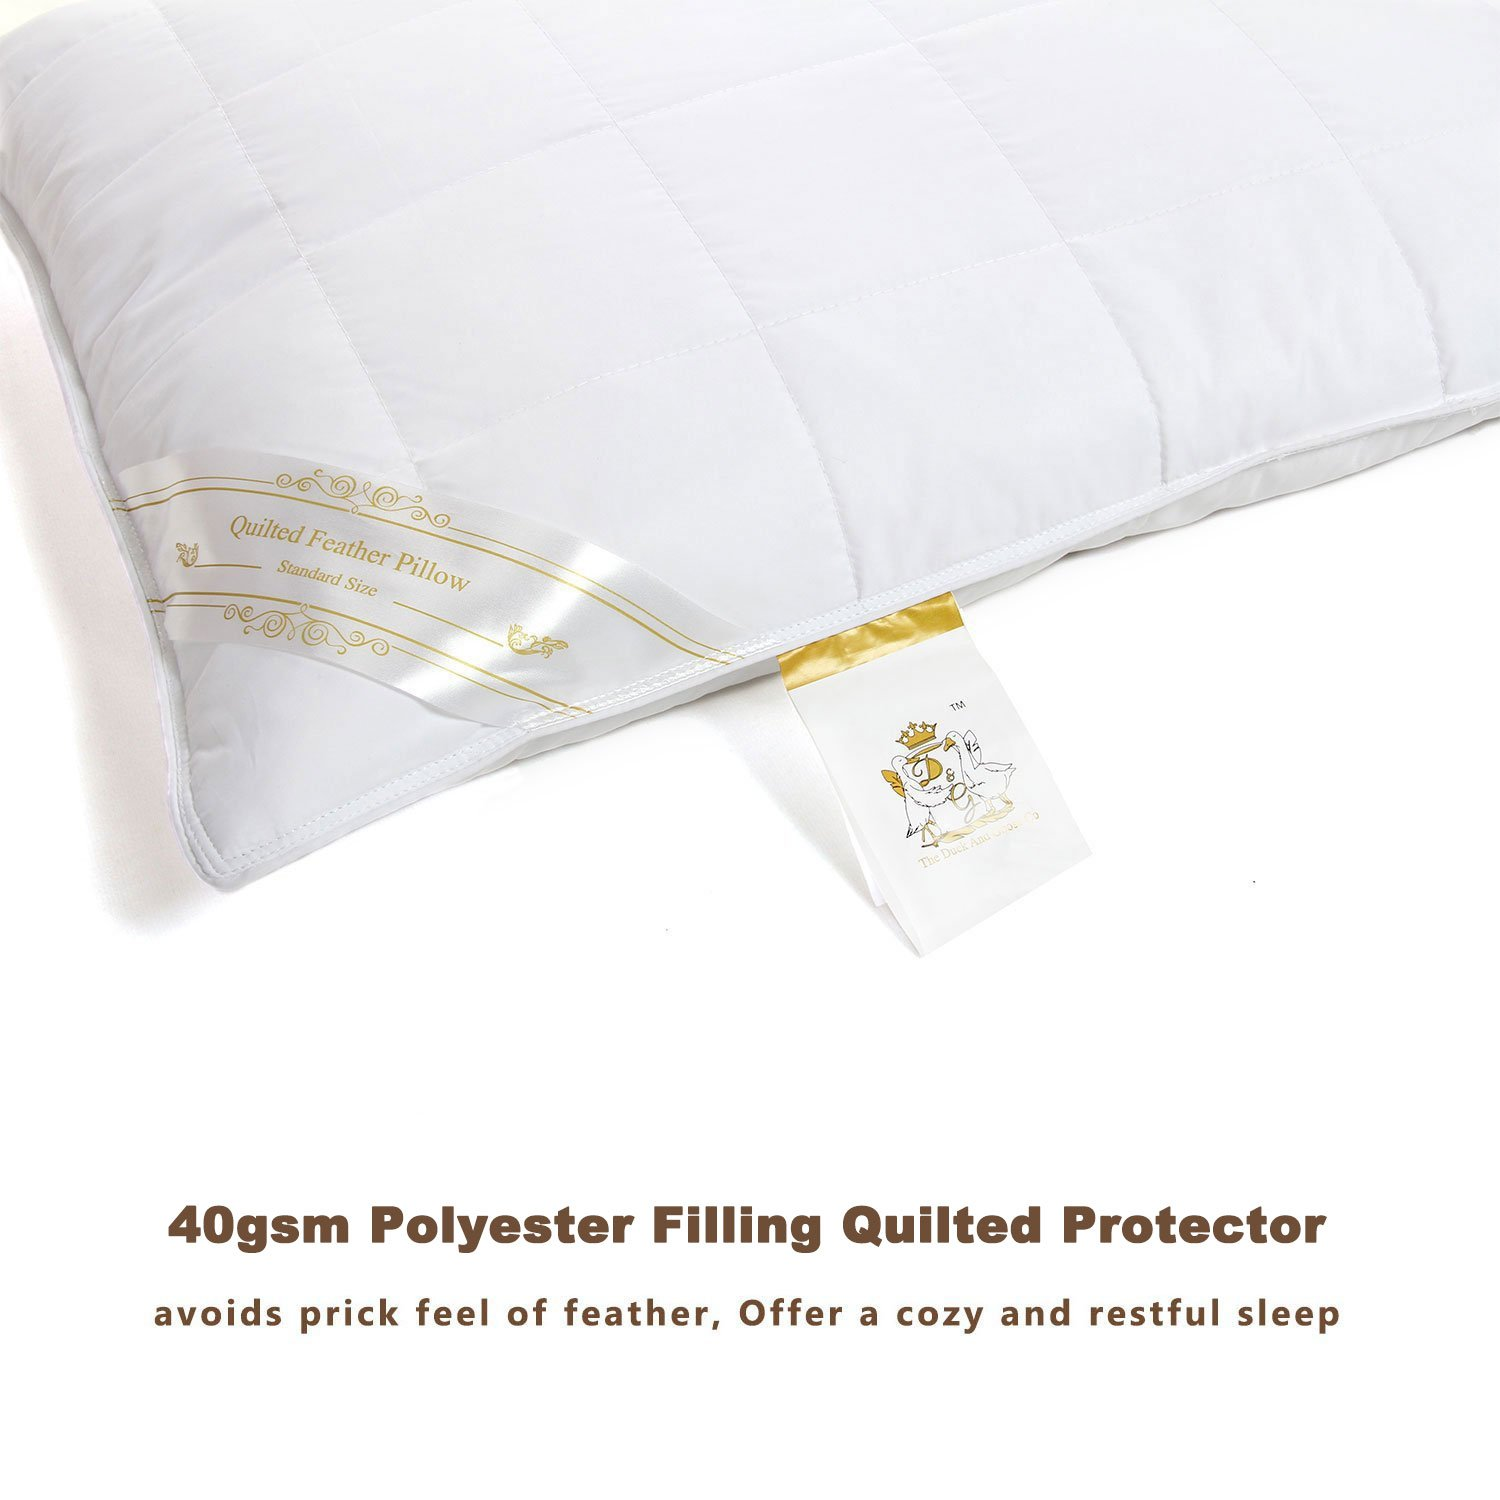 amazon com quilted feather pillow 100gsm down proof triple layers